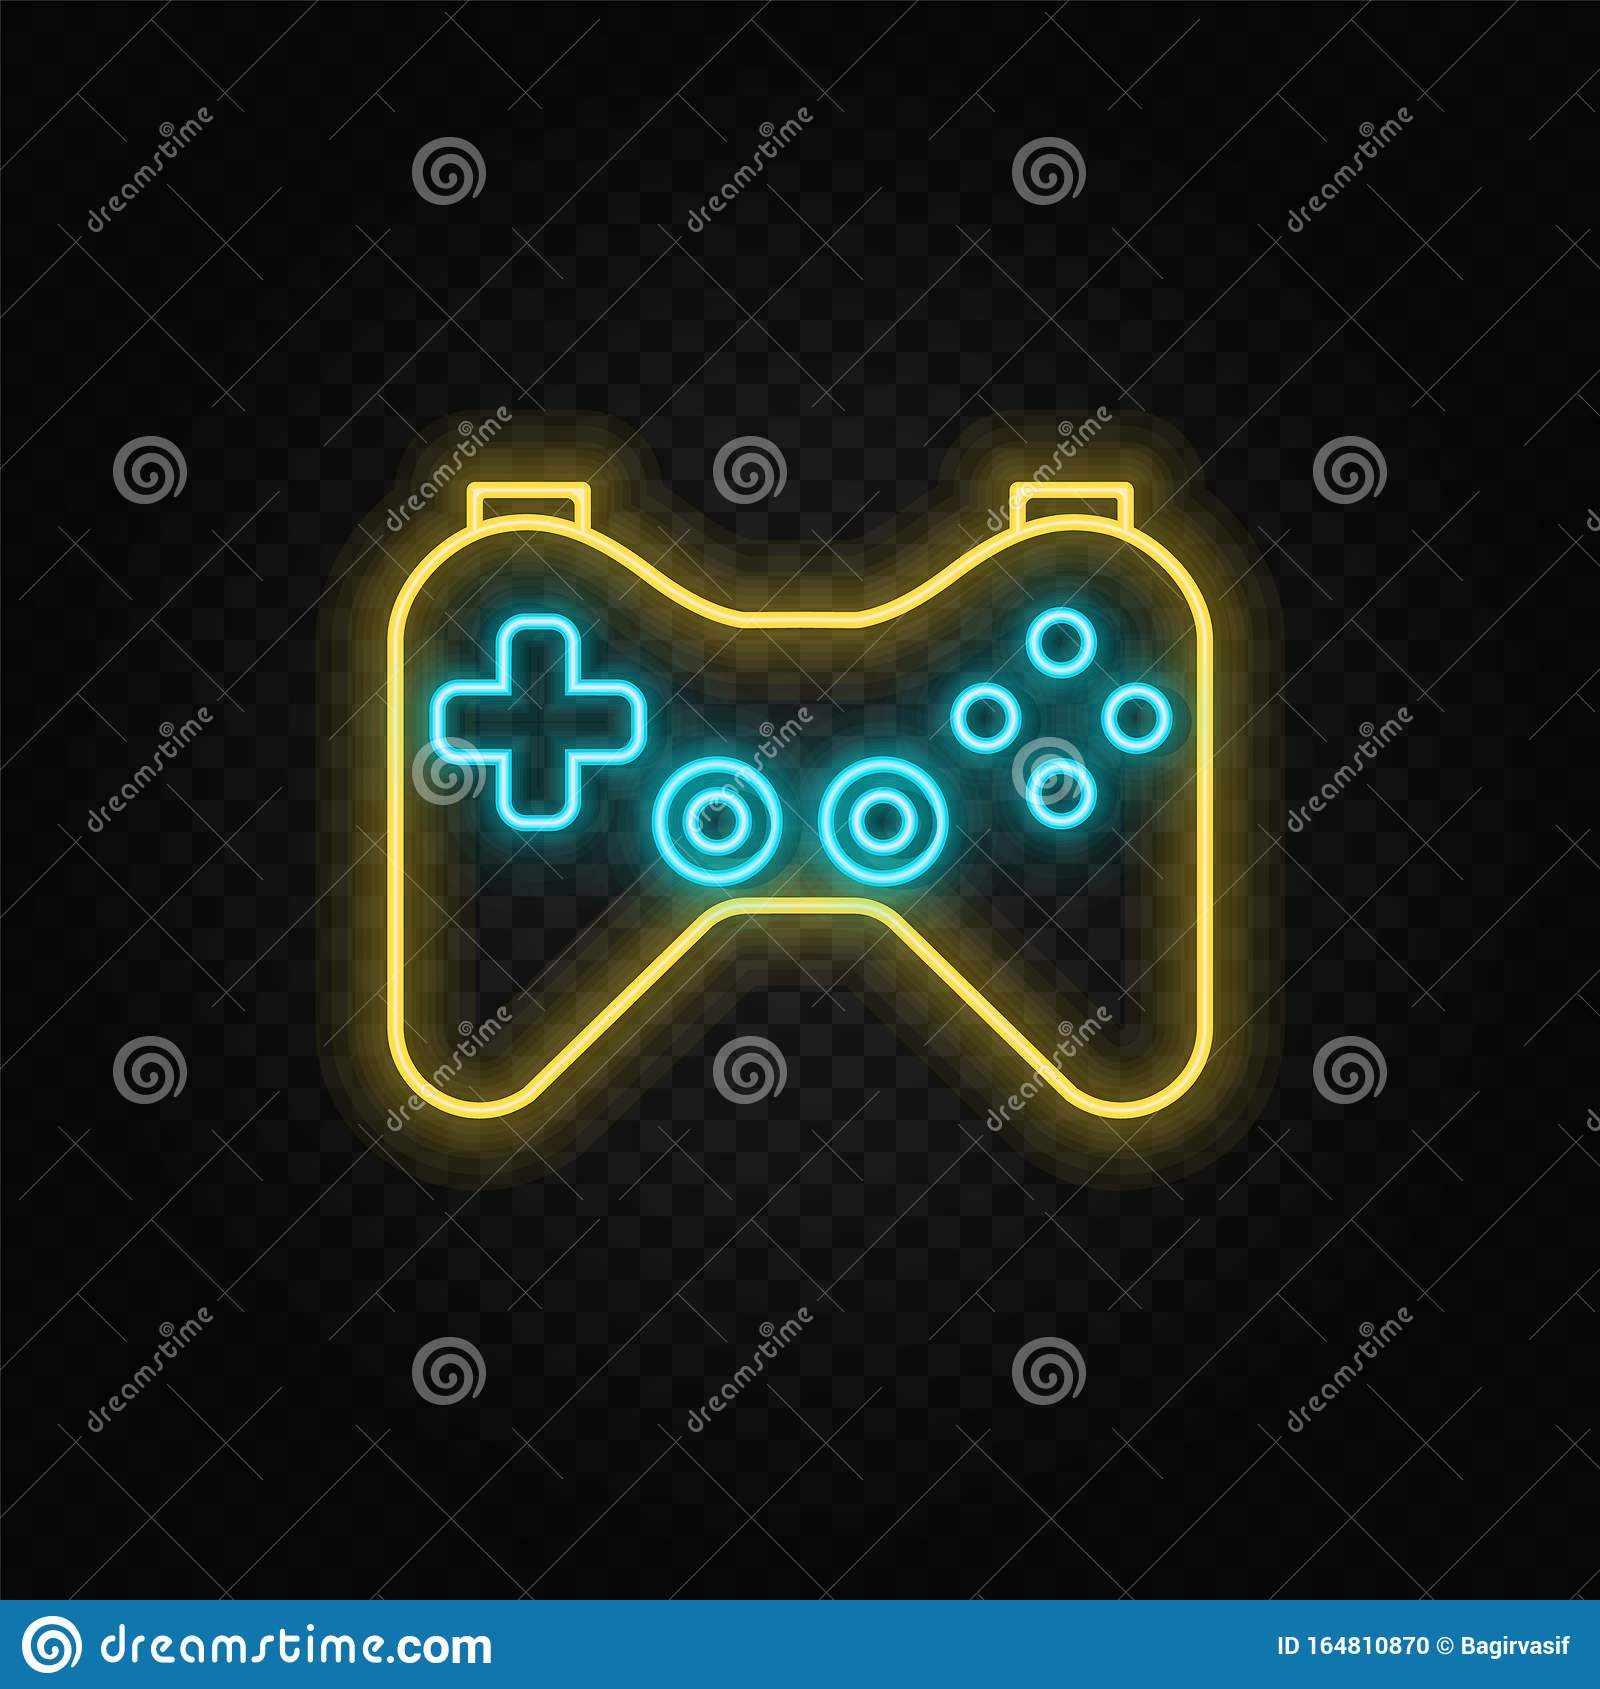 Joystick Game Controller Gaming Neon Icon Blue And Yellow Neon Vector Icon Stock Illustration Illustration Of Digital Neon 164810870